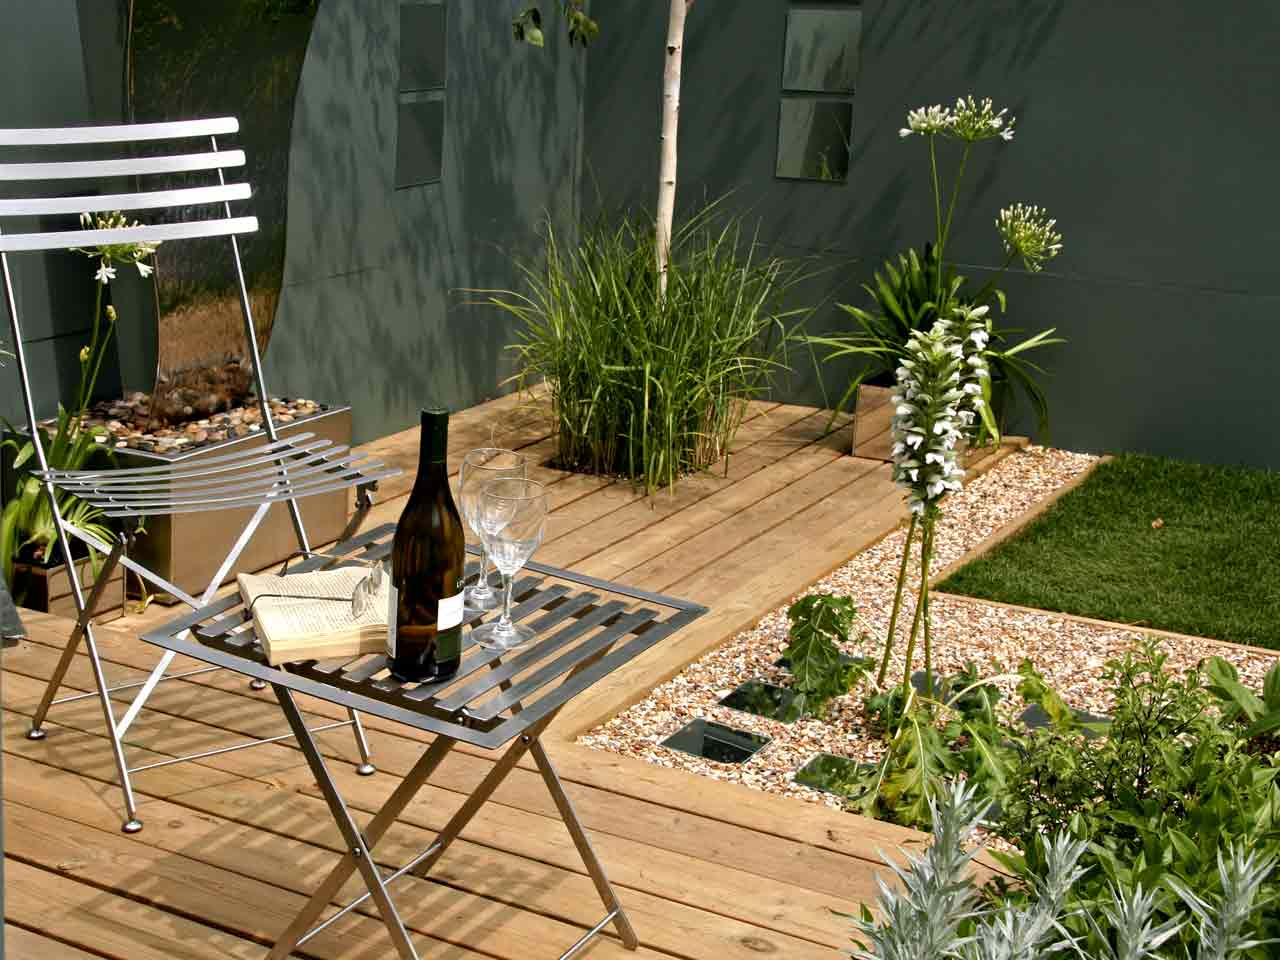 Small garden ideas and inspiration - Saga